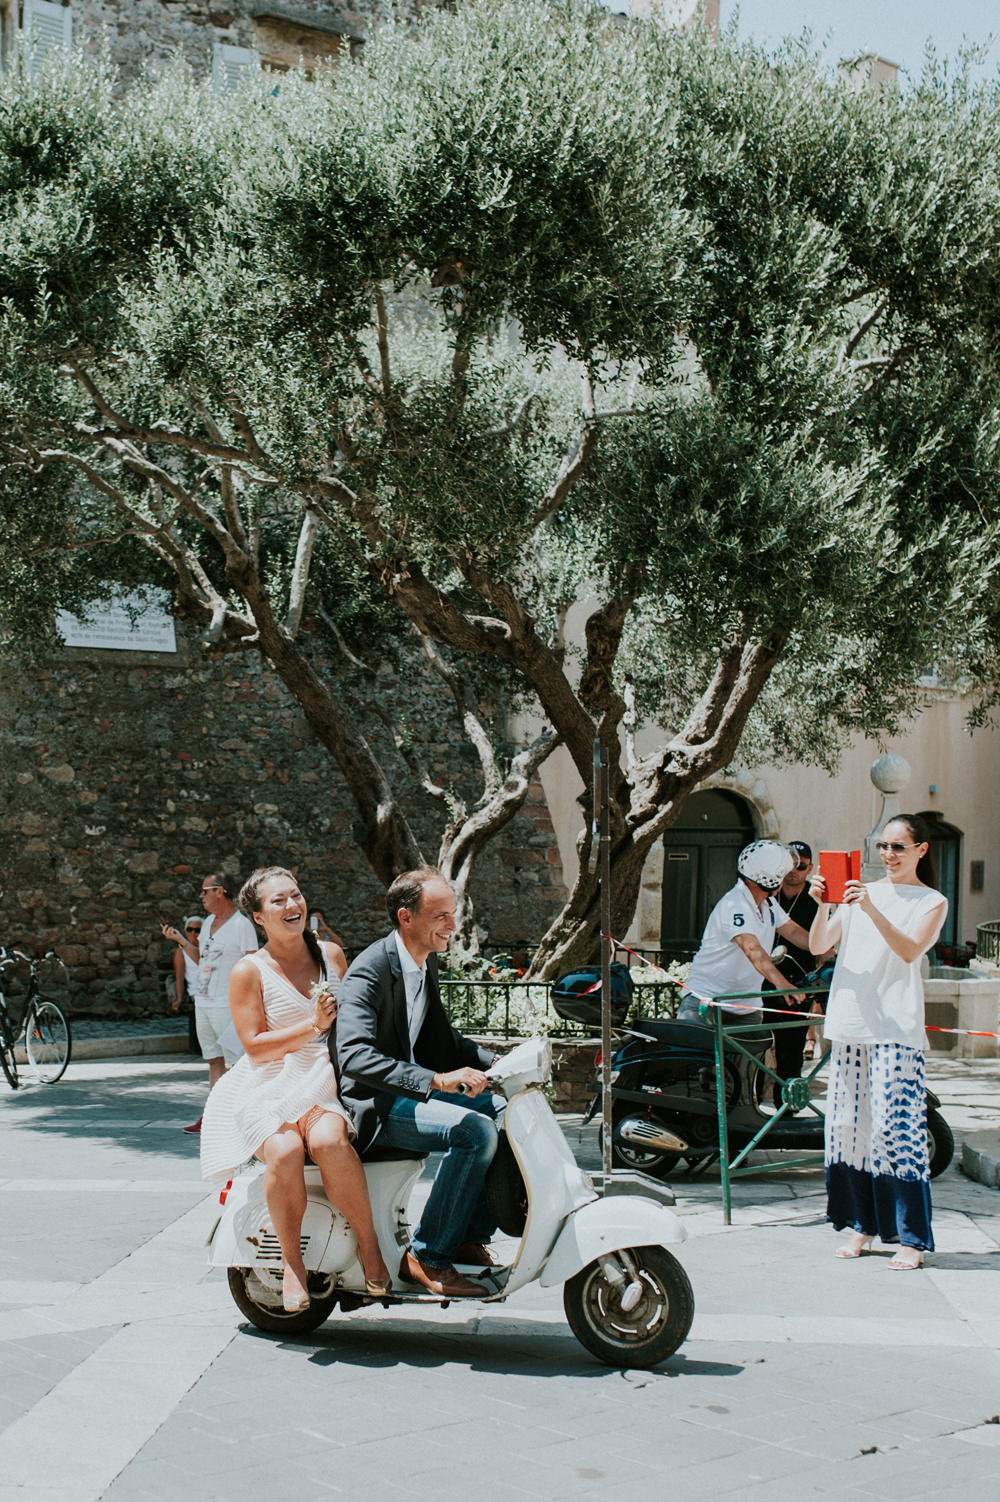 Saint Tropez Wedding The Quirky Photographer Beatrice